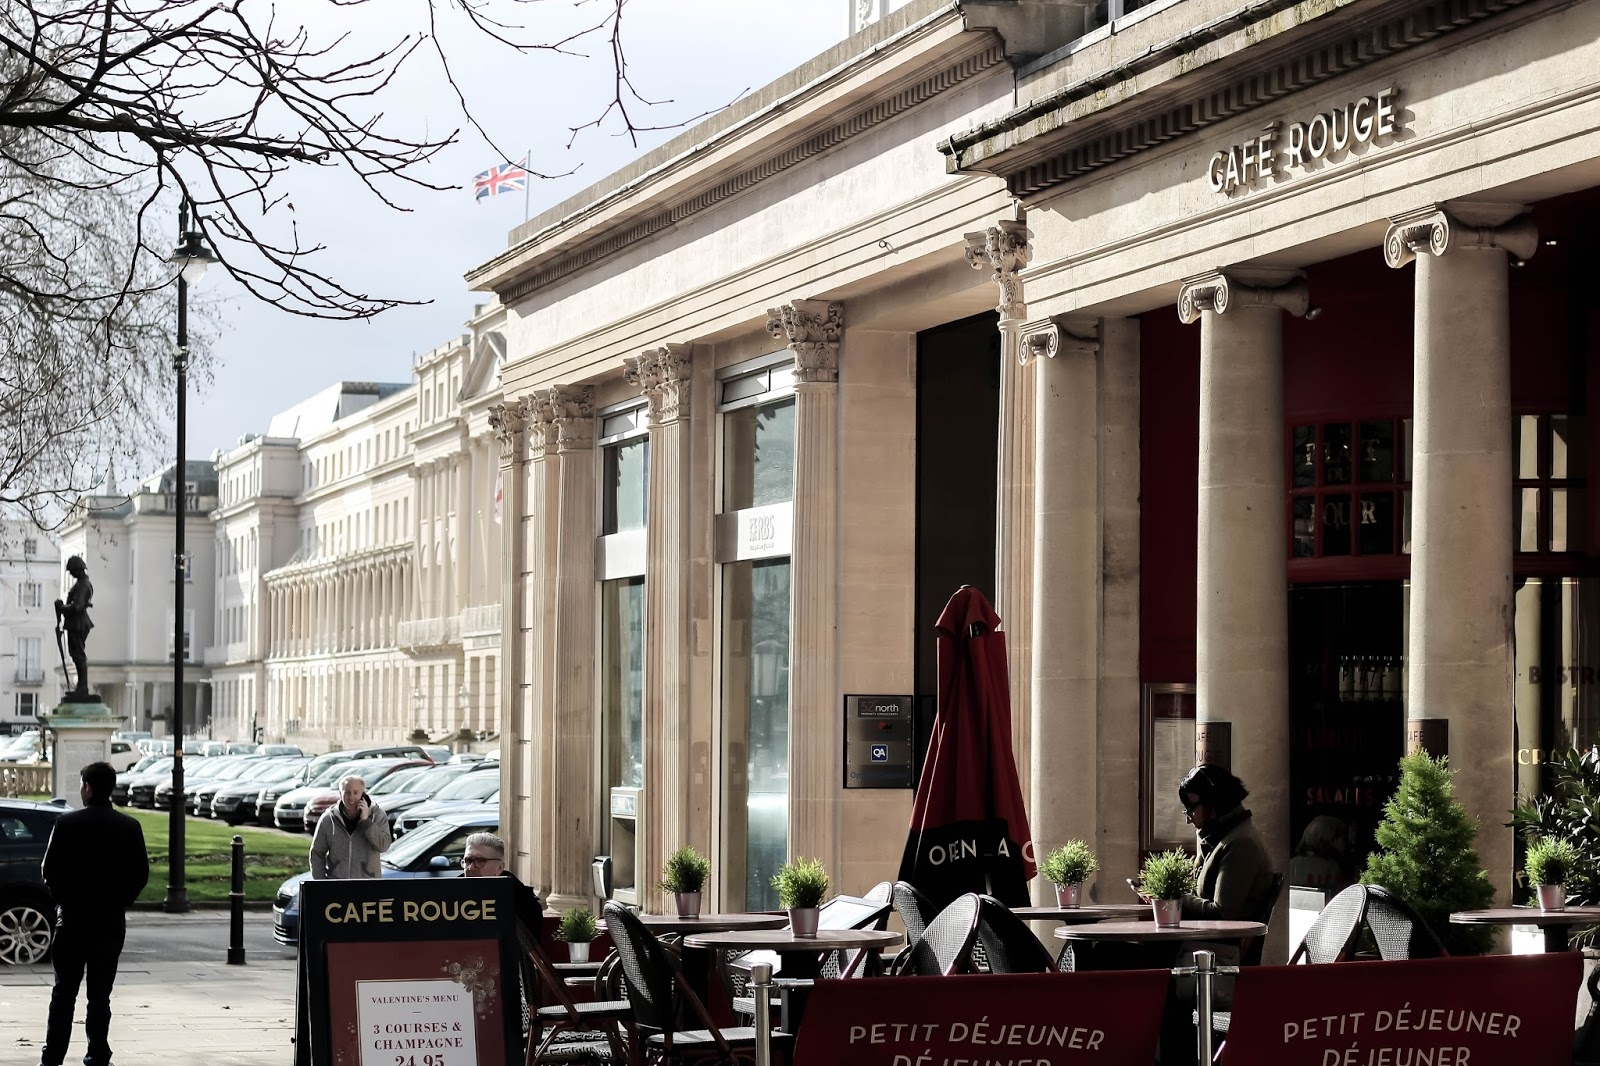 Cafe Rouge Historic Building in Cheltenham